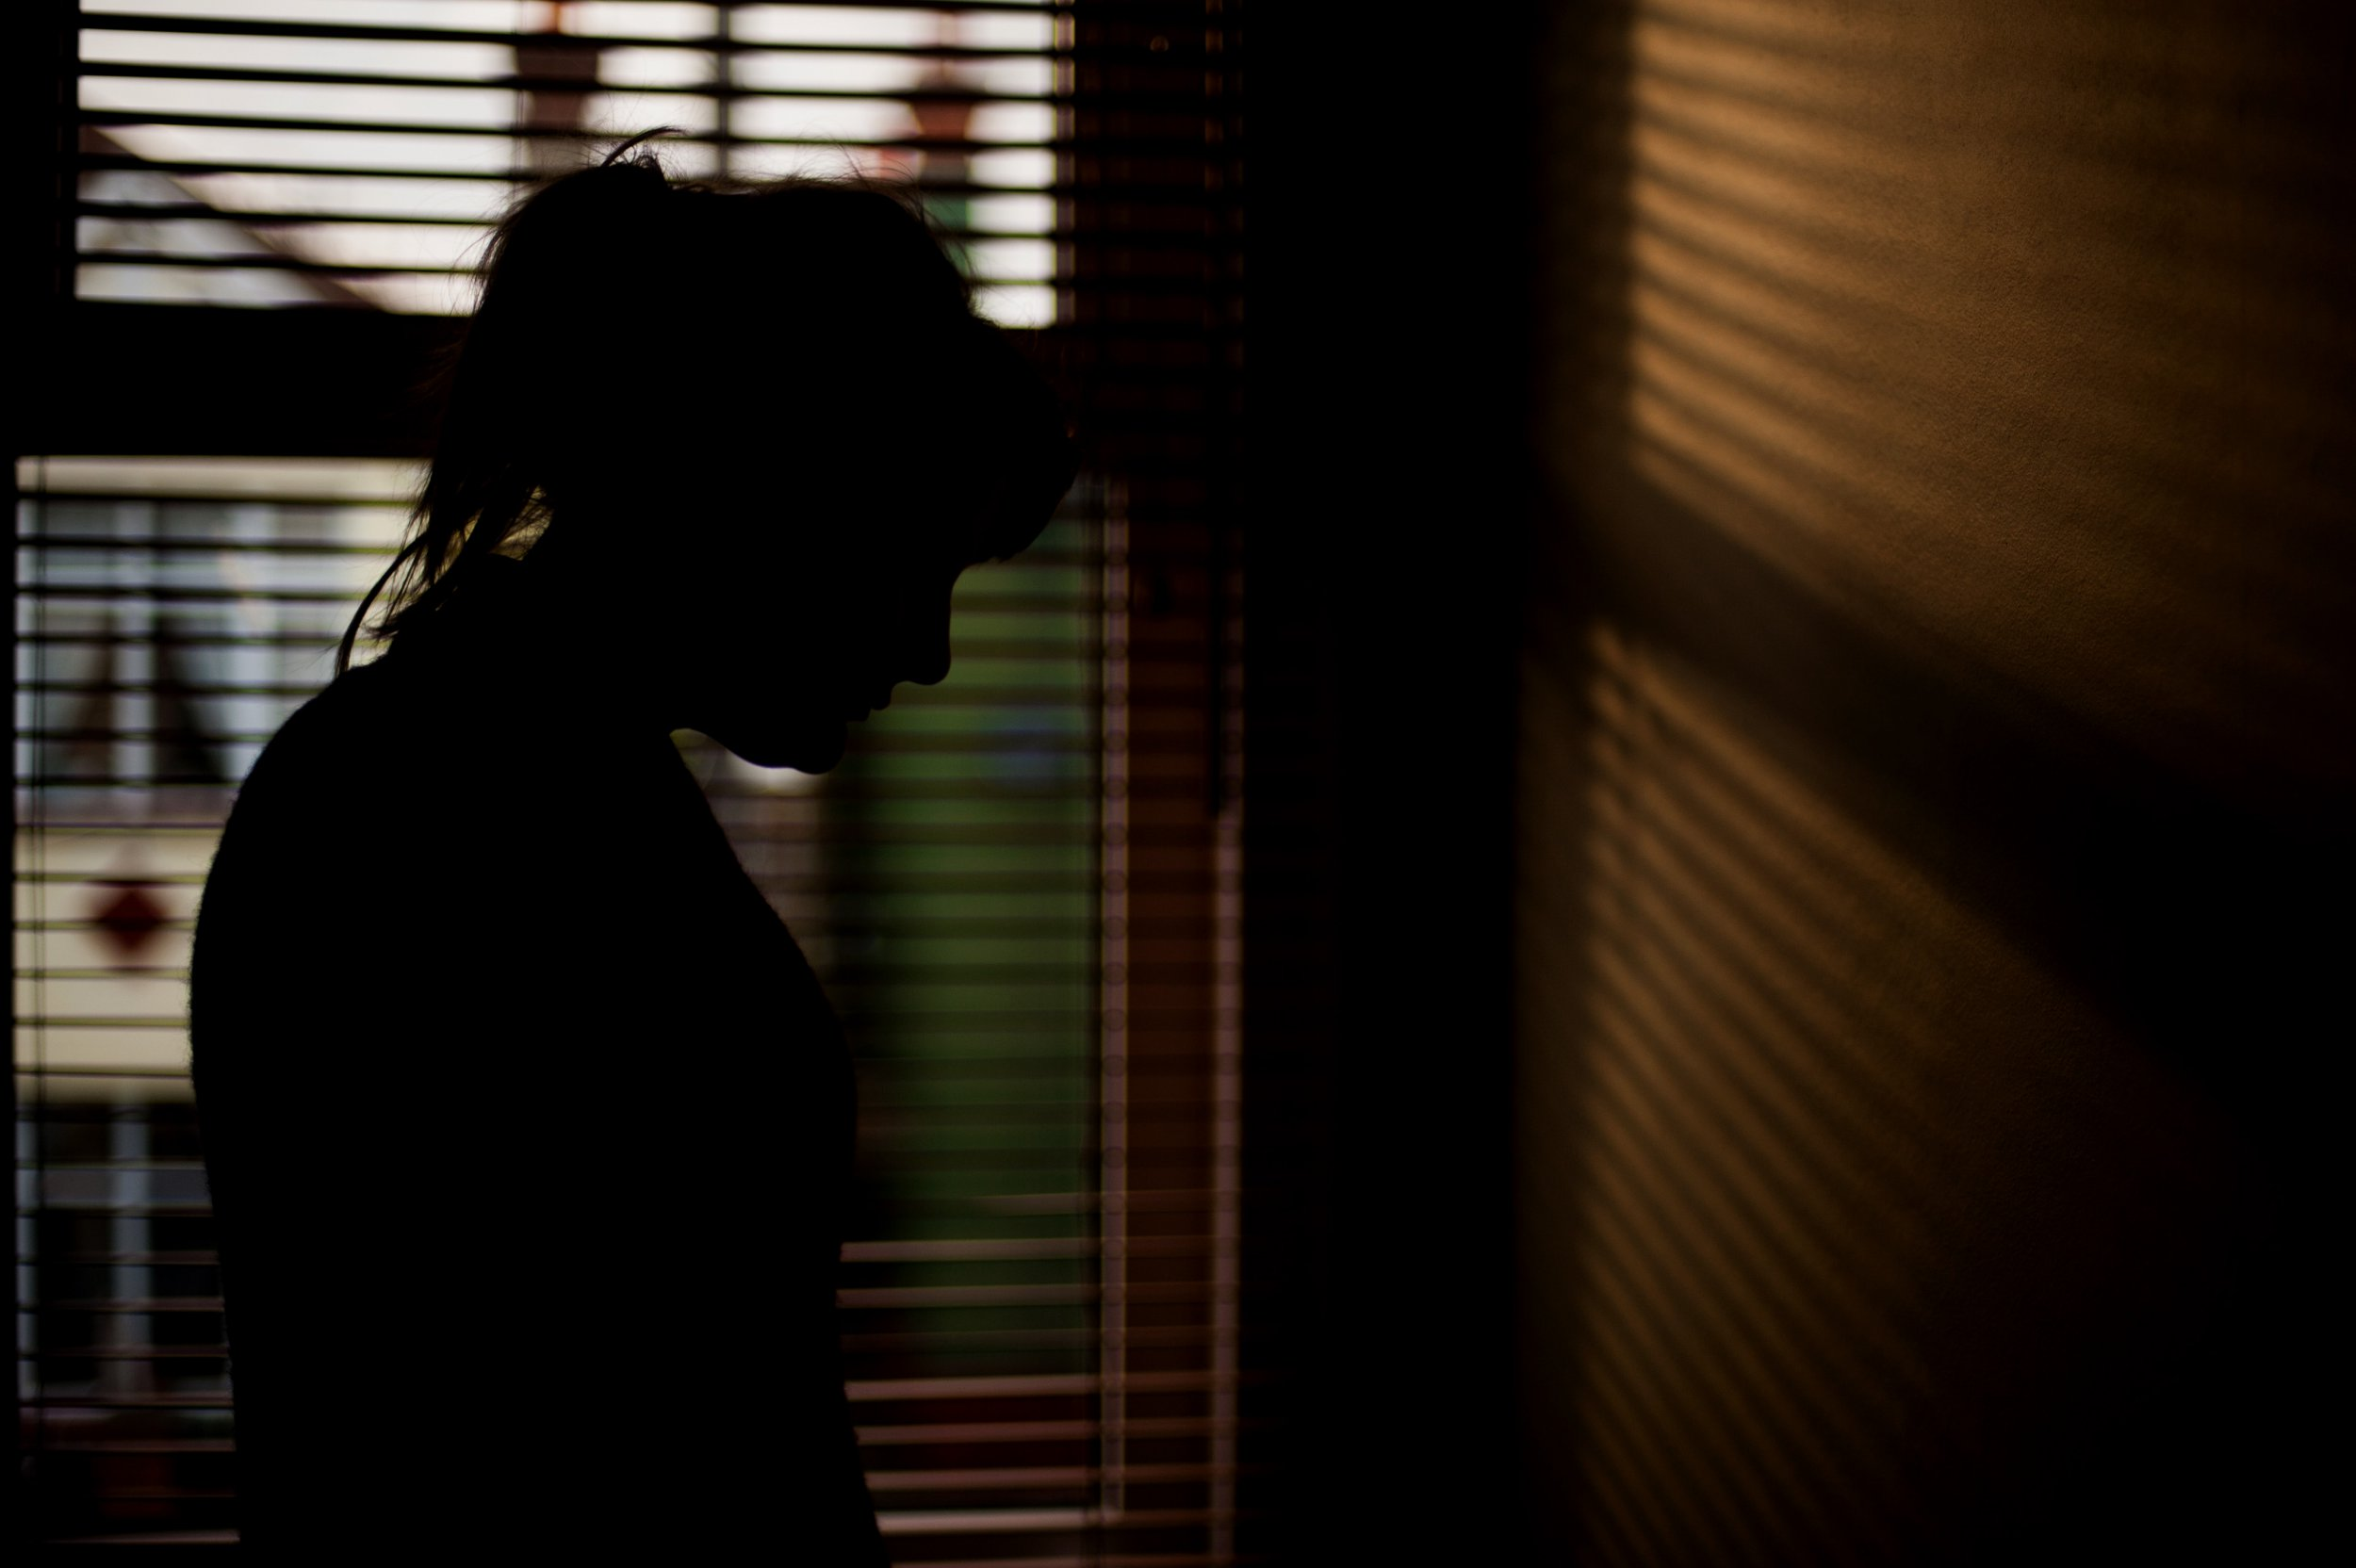 The silhouette of a woman standing by a window. IT is late in the day and the light is streaming through the blinds in front of the window, creating a striped pattern on the wall. The woman is standing in profile with her hair tied back in a ponytail.